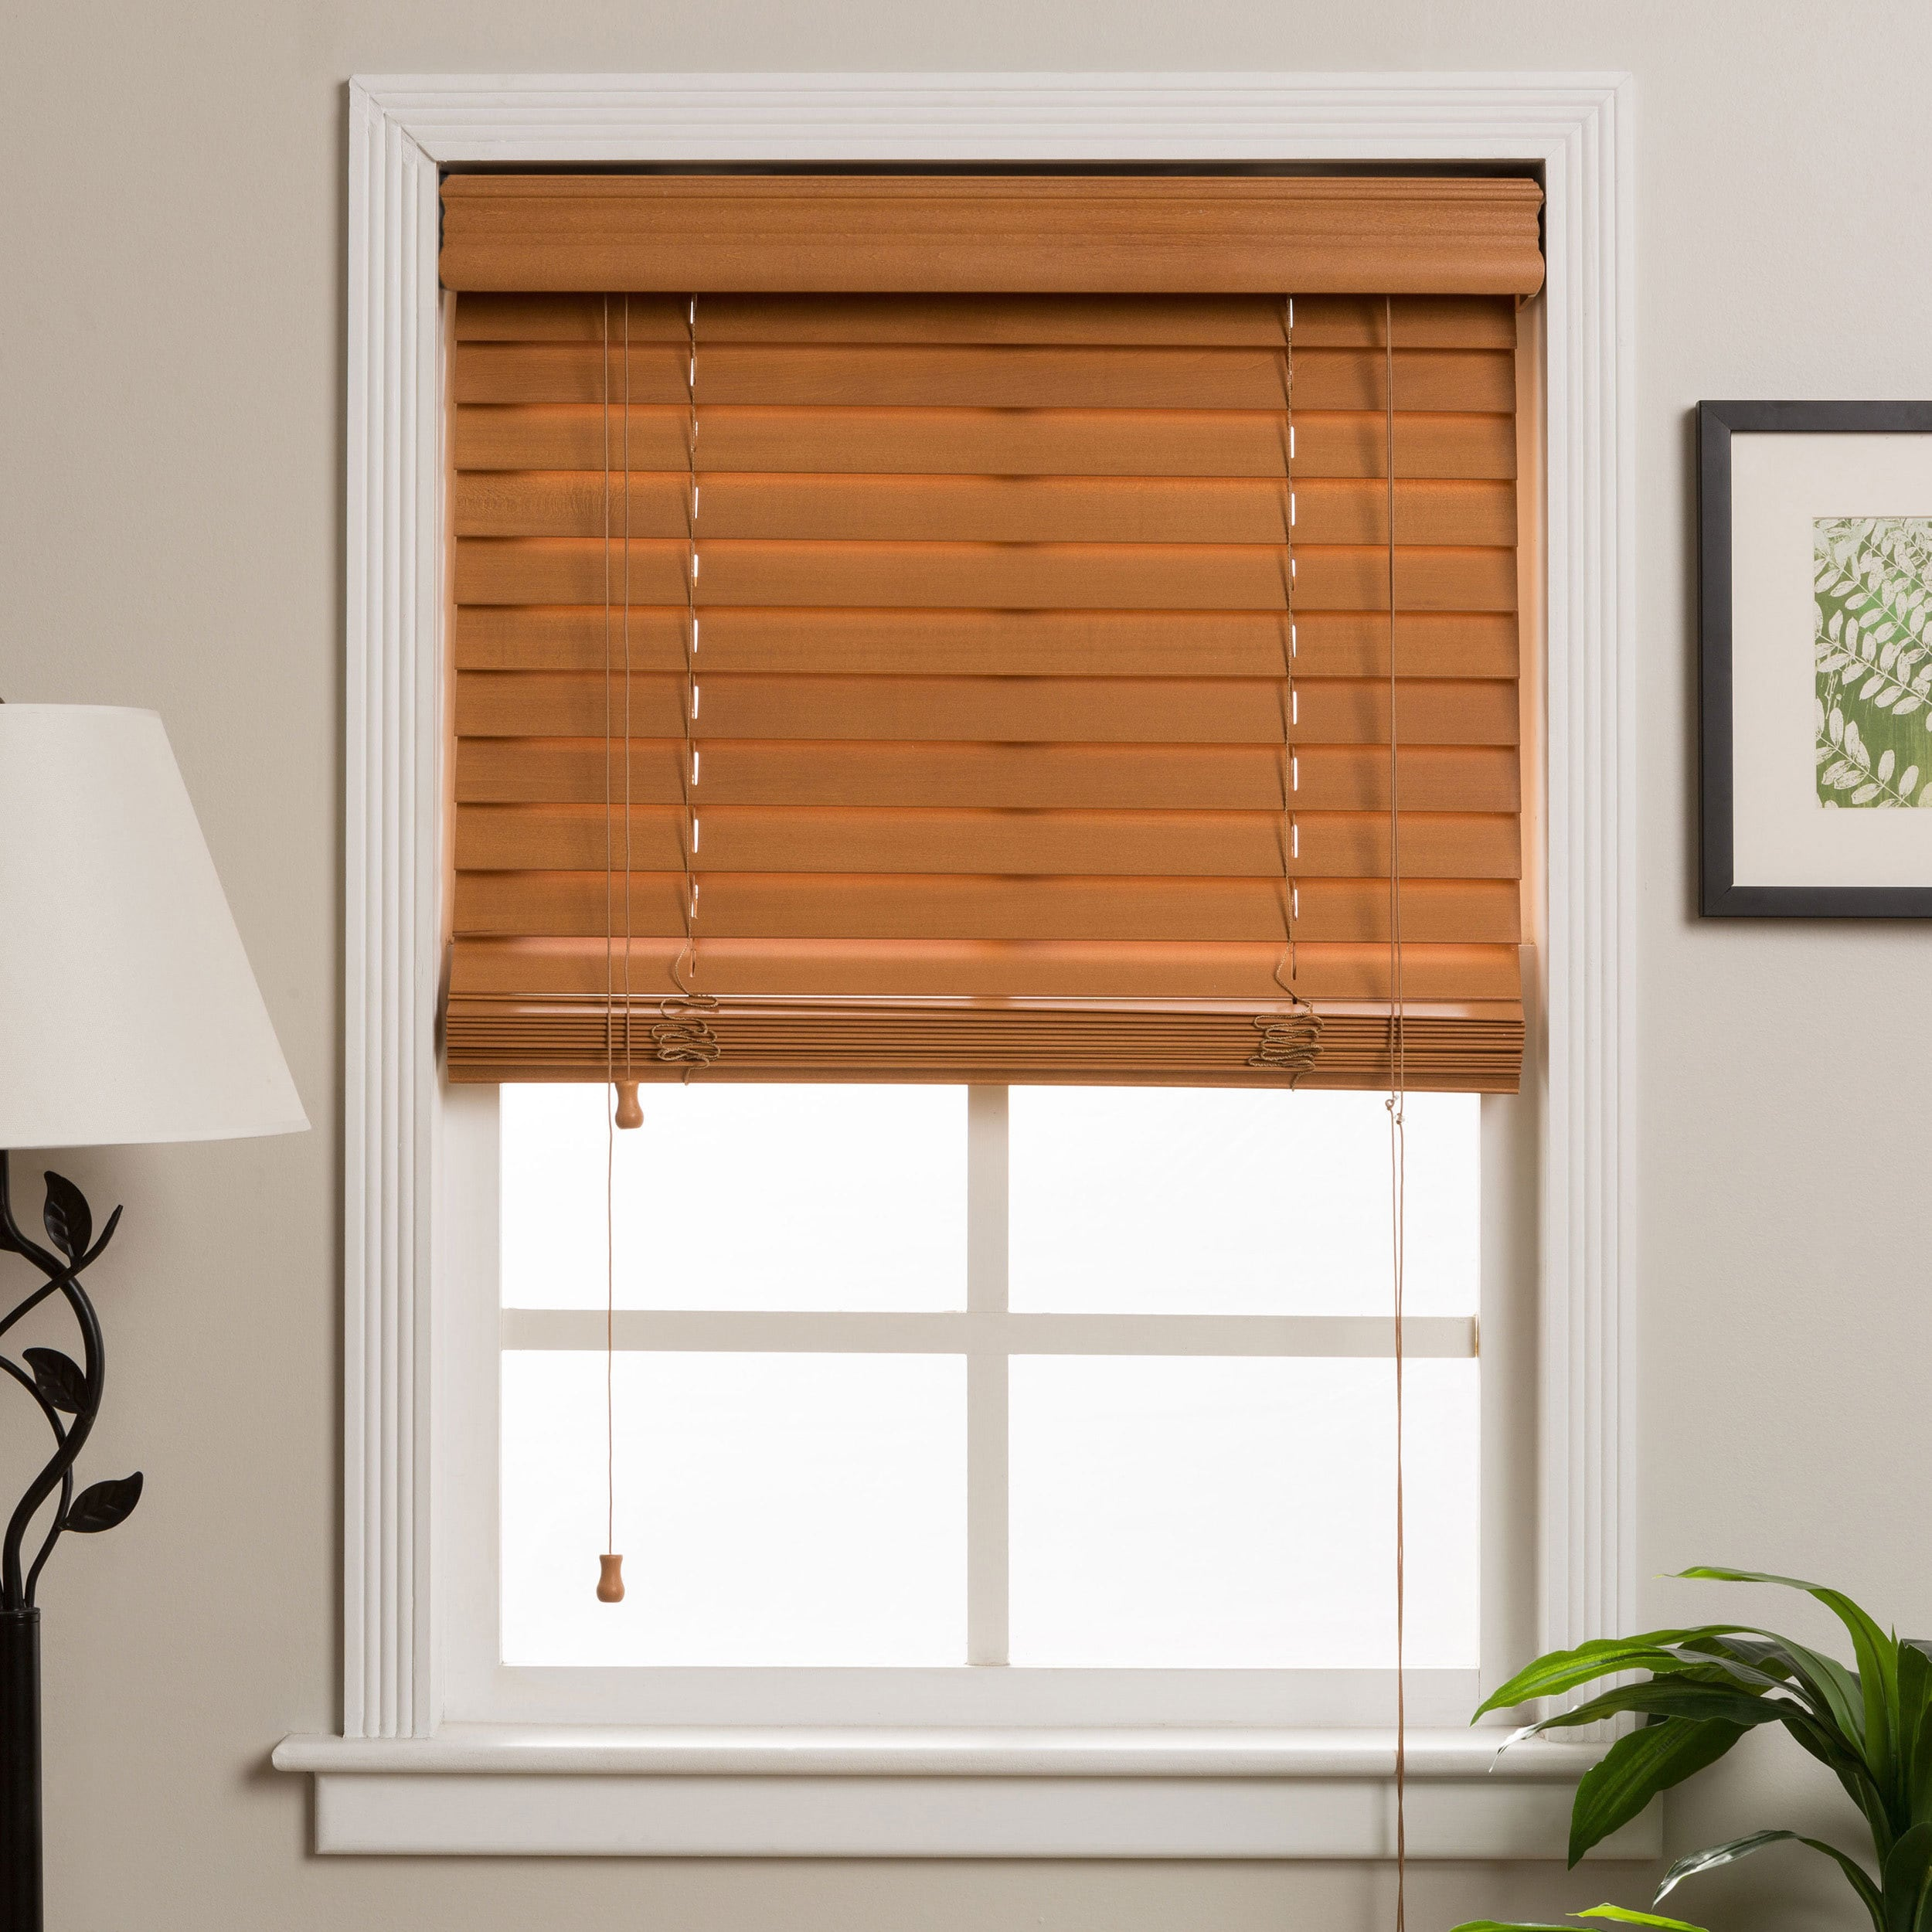 wooden window blinds shop arlo blinds customized 36-inch real wood window blinds - on sale FUPOSPX